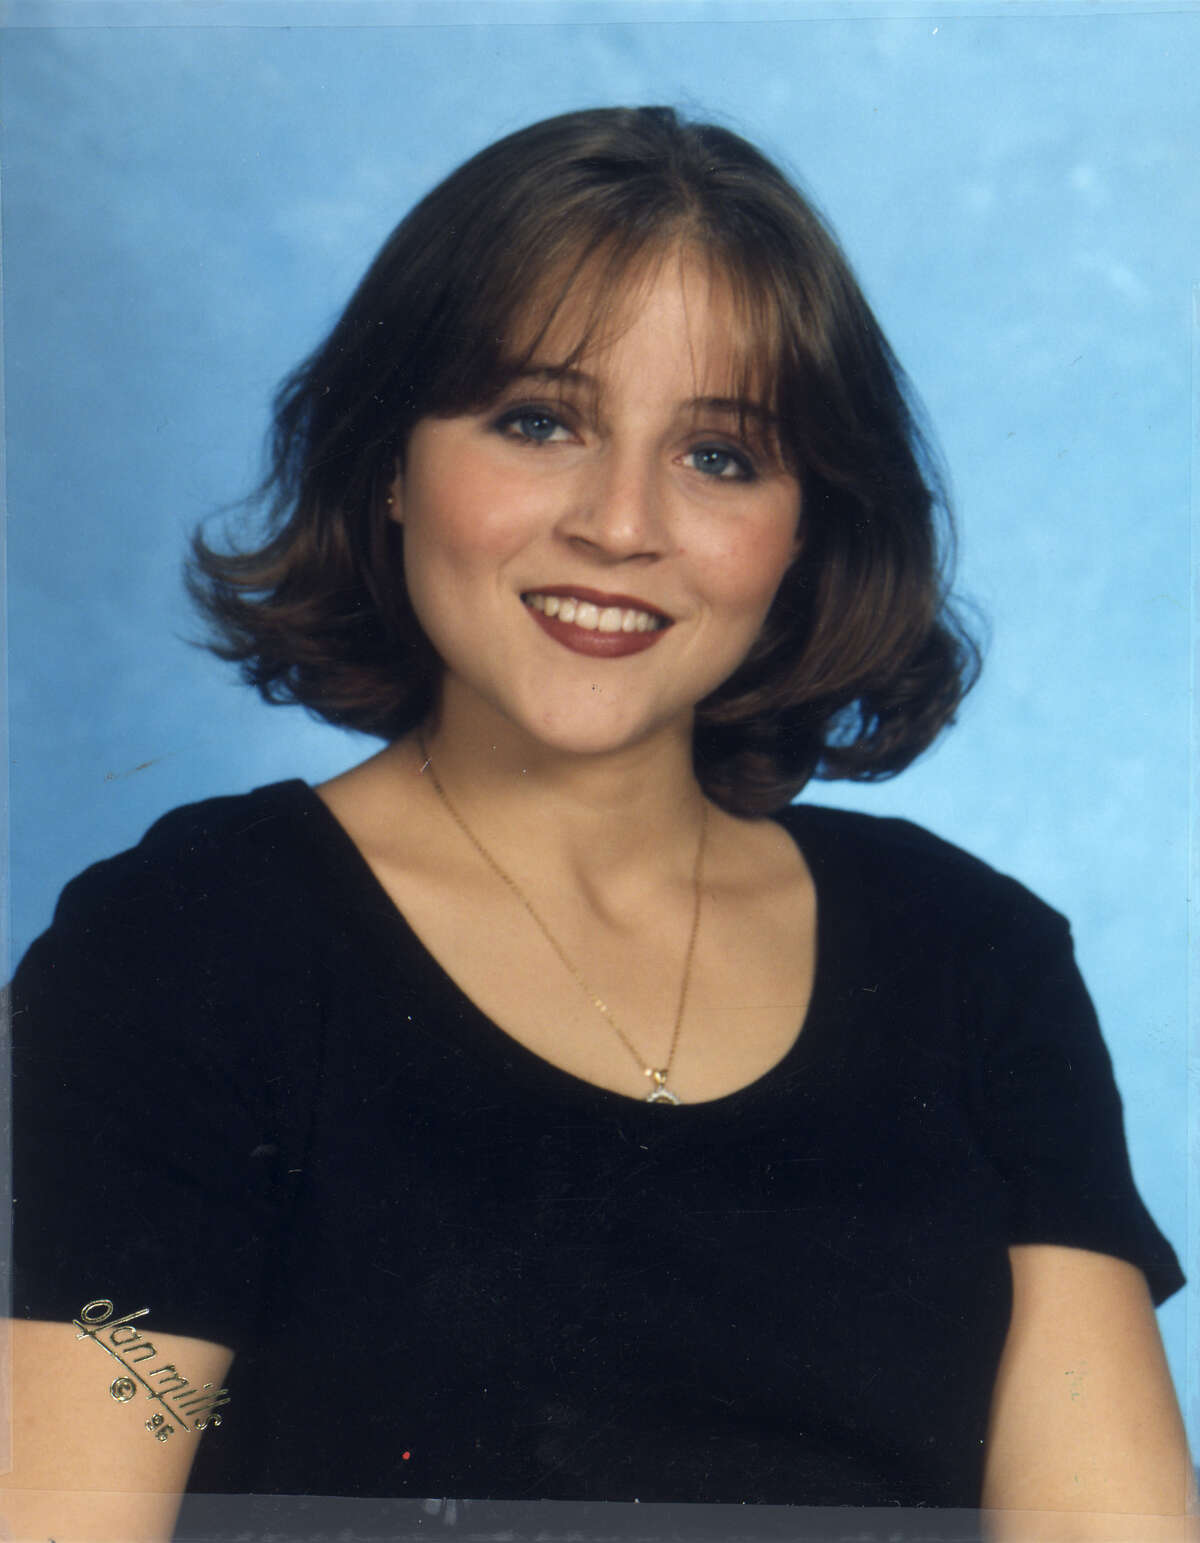 In April, authorities confirmed that remains found in south Houston were those of Jessica Cain, who vanished in 1997.